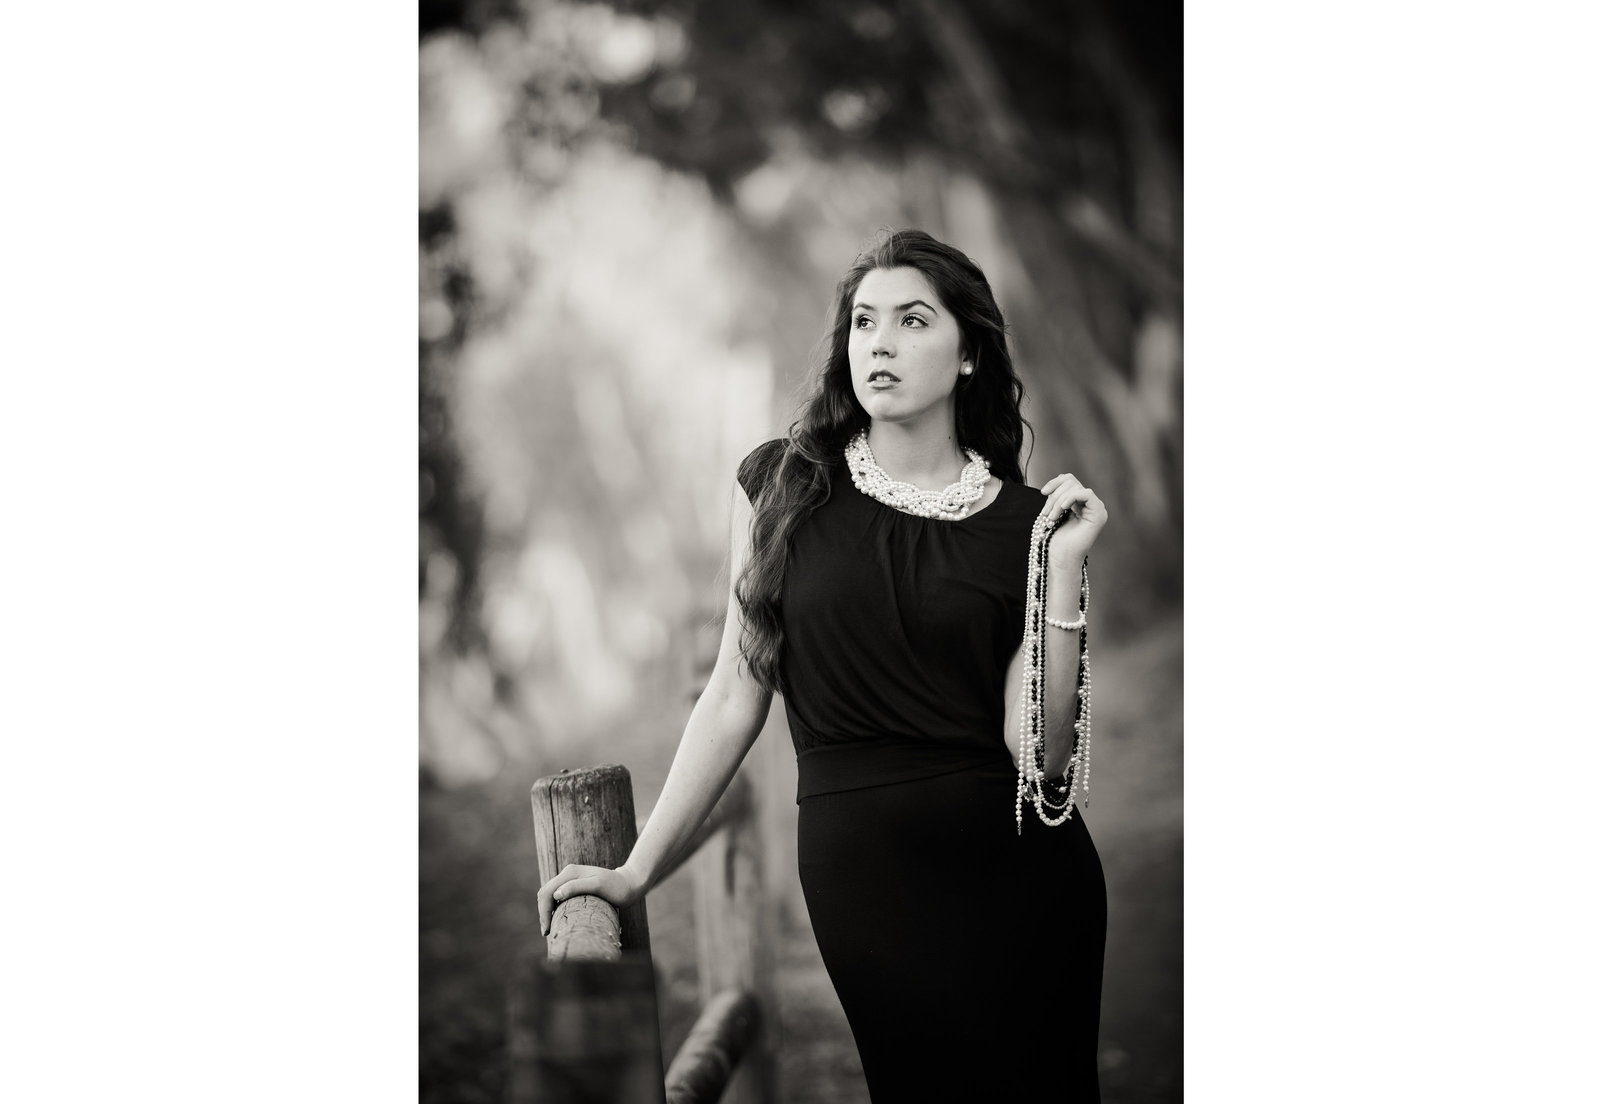 black and white of high school senior in black dress and pearls